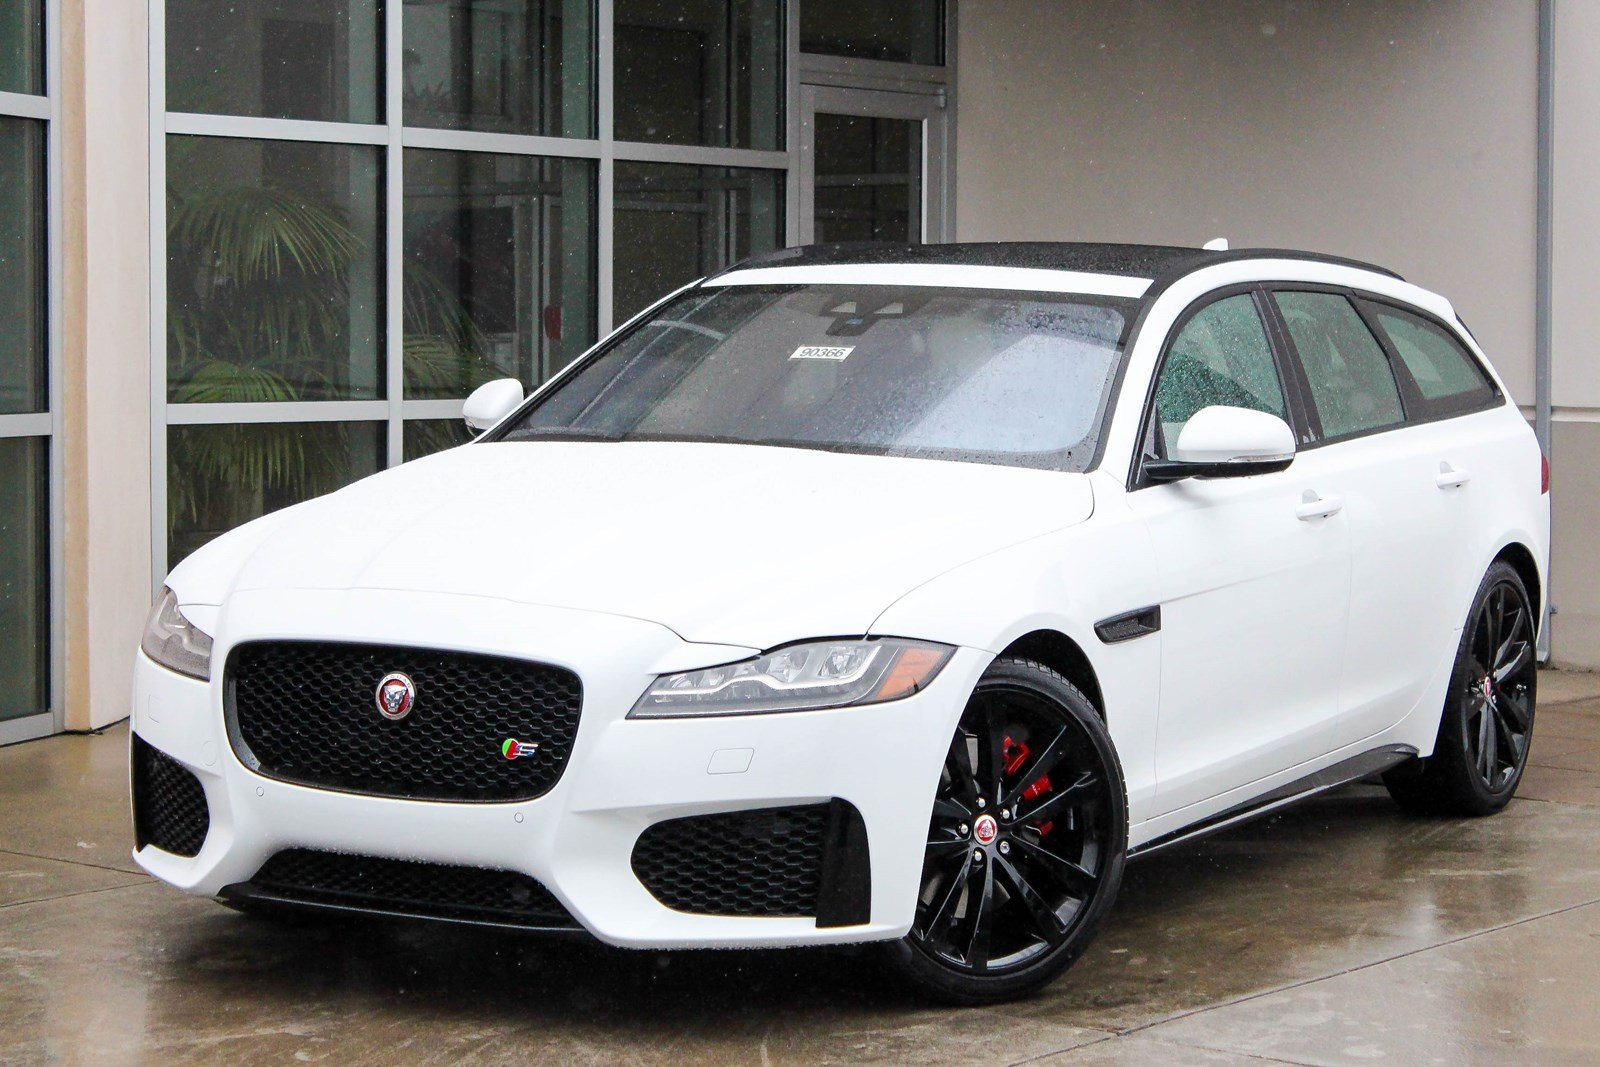 Awesome New 2018 Jaguar XF Sportbrake S AWD